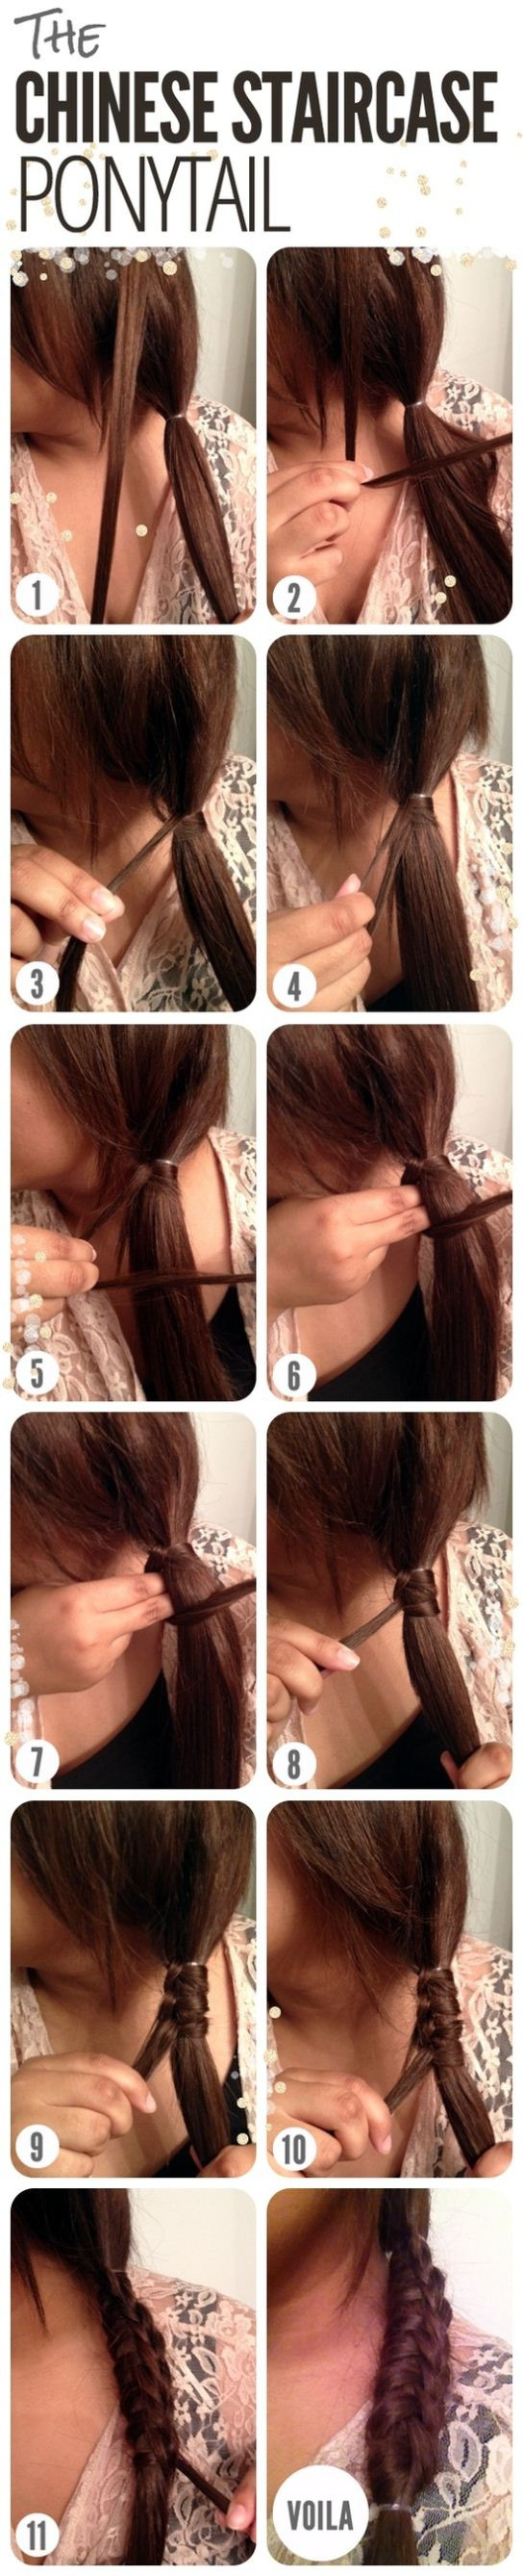 easy hairstyles to do yourself for prom 11 Interesting And Useful Hair Tutorials For Every Day   Fashion